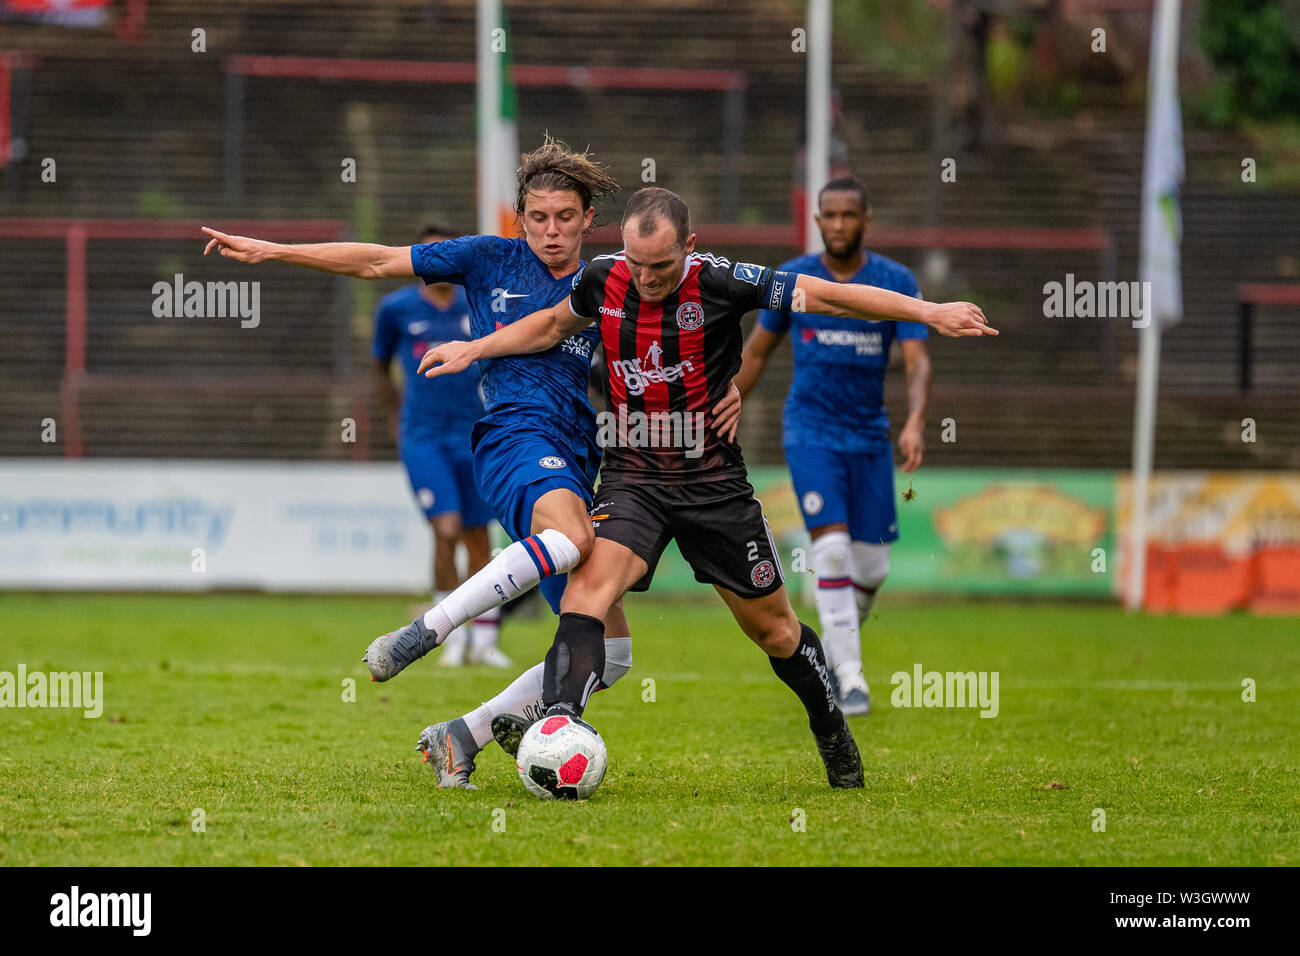 Derek Pender (R) and Conor Gallagher (L) in action during Chelsea's pre season friendly match against Bohemian FC in Dublin. Final Score 1-1. - Stock Image